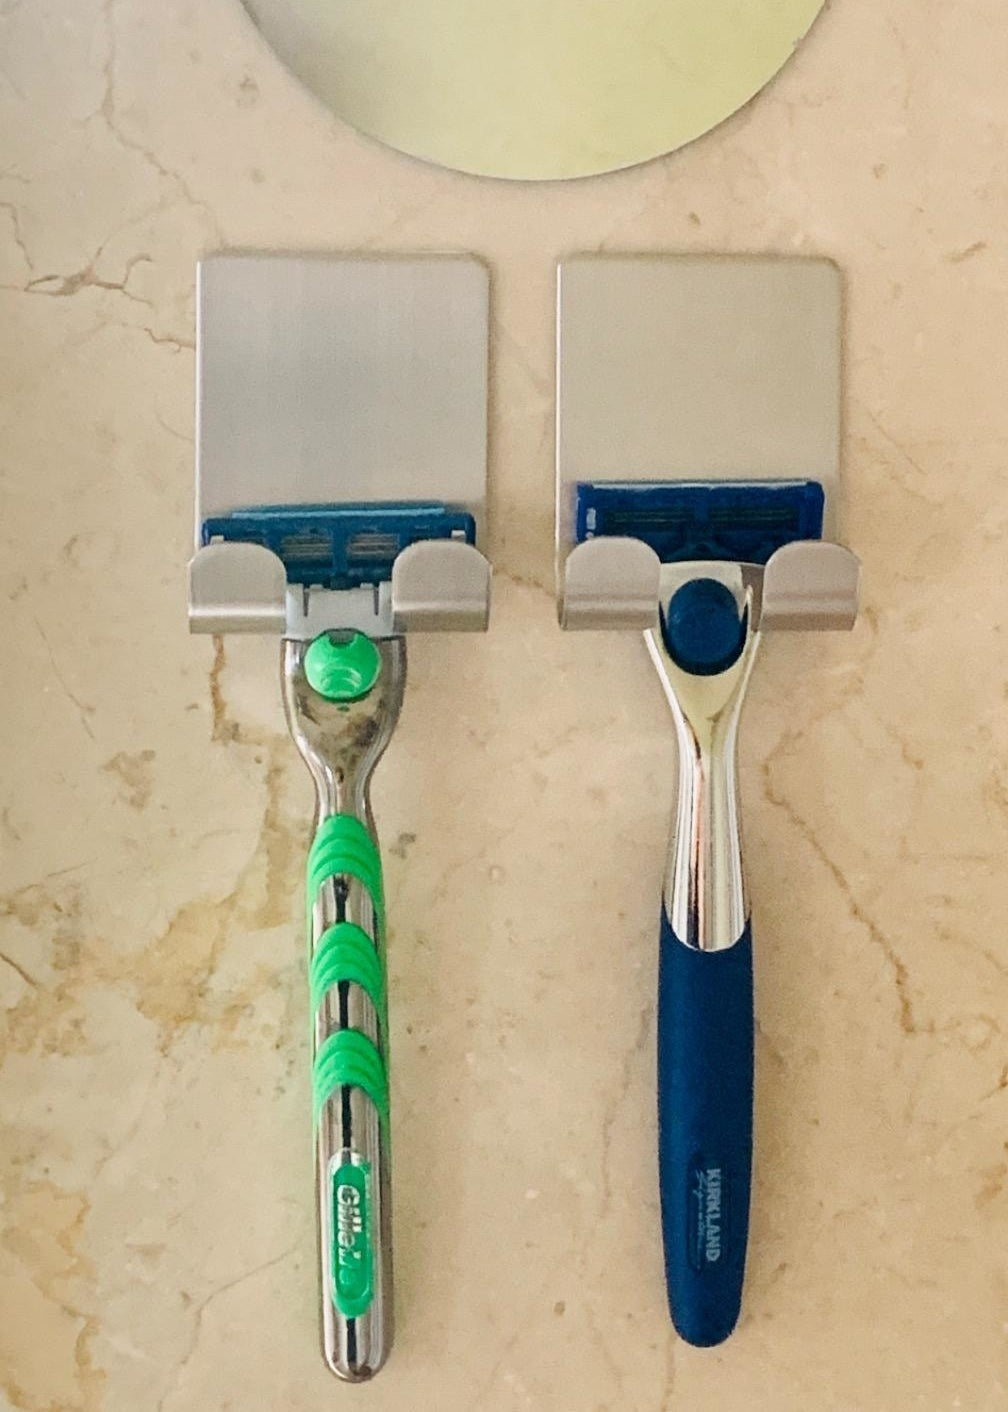 A reviewer's razors in the holders